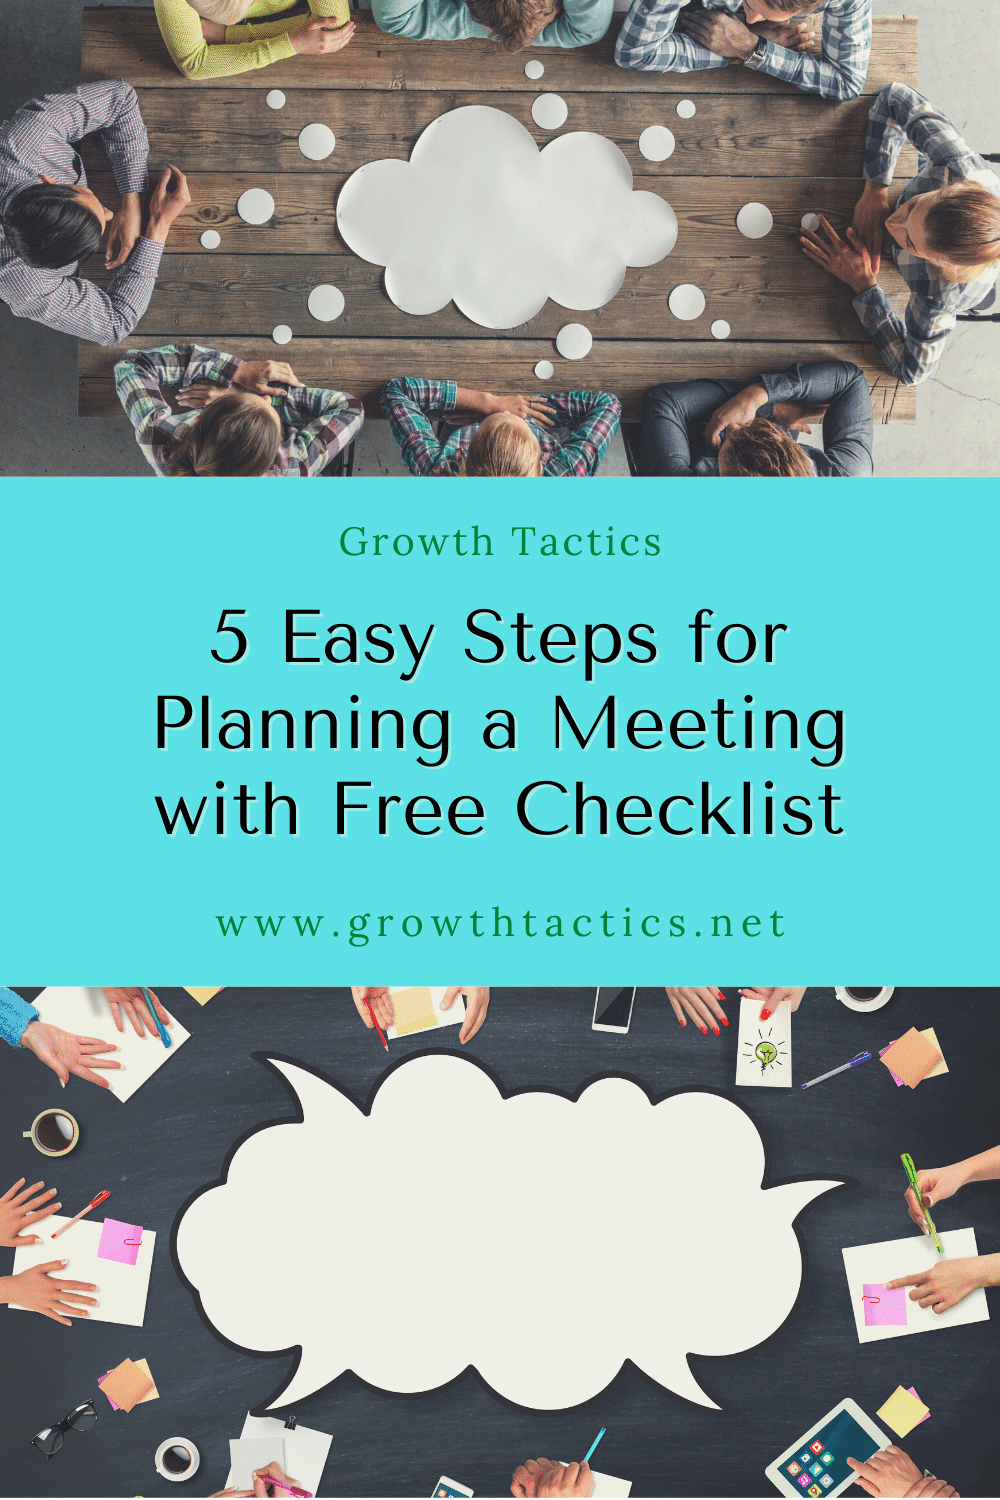 5 Easy Steps for Planning a Meeting with Free Checklist